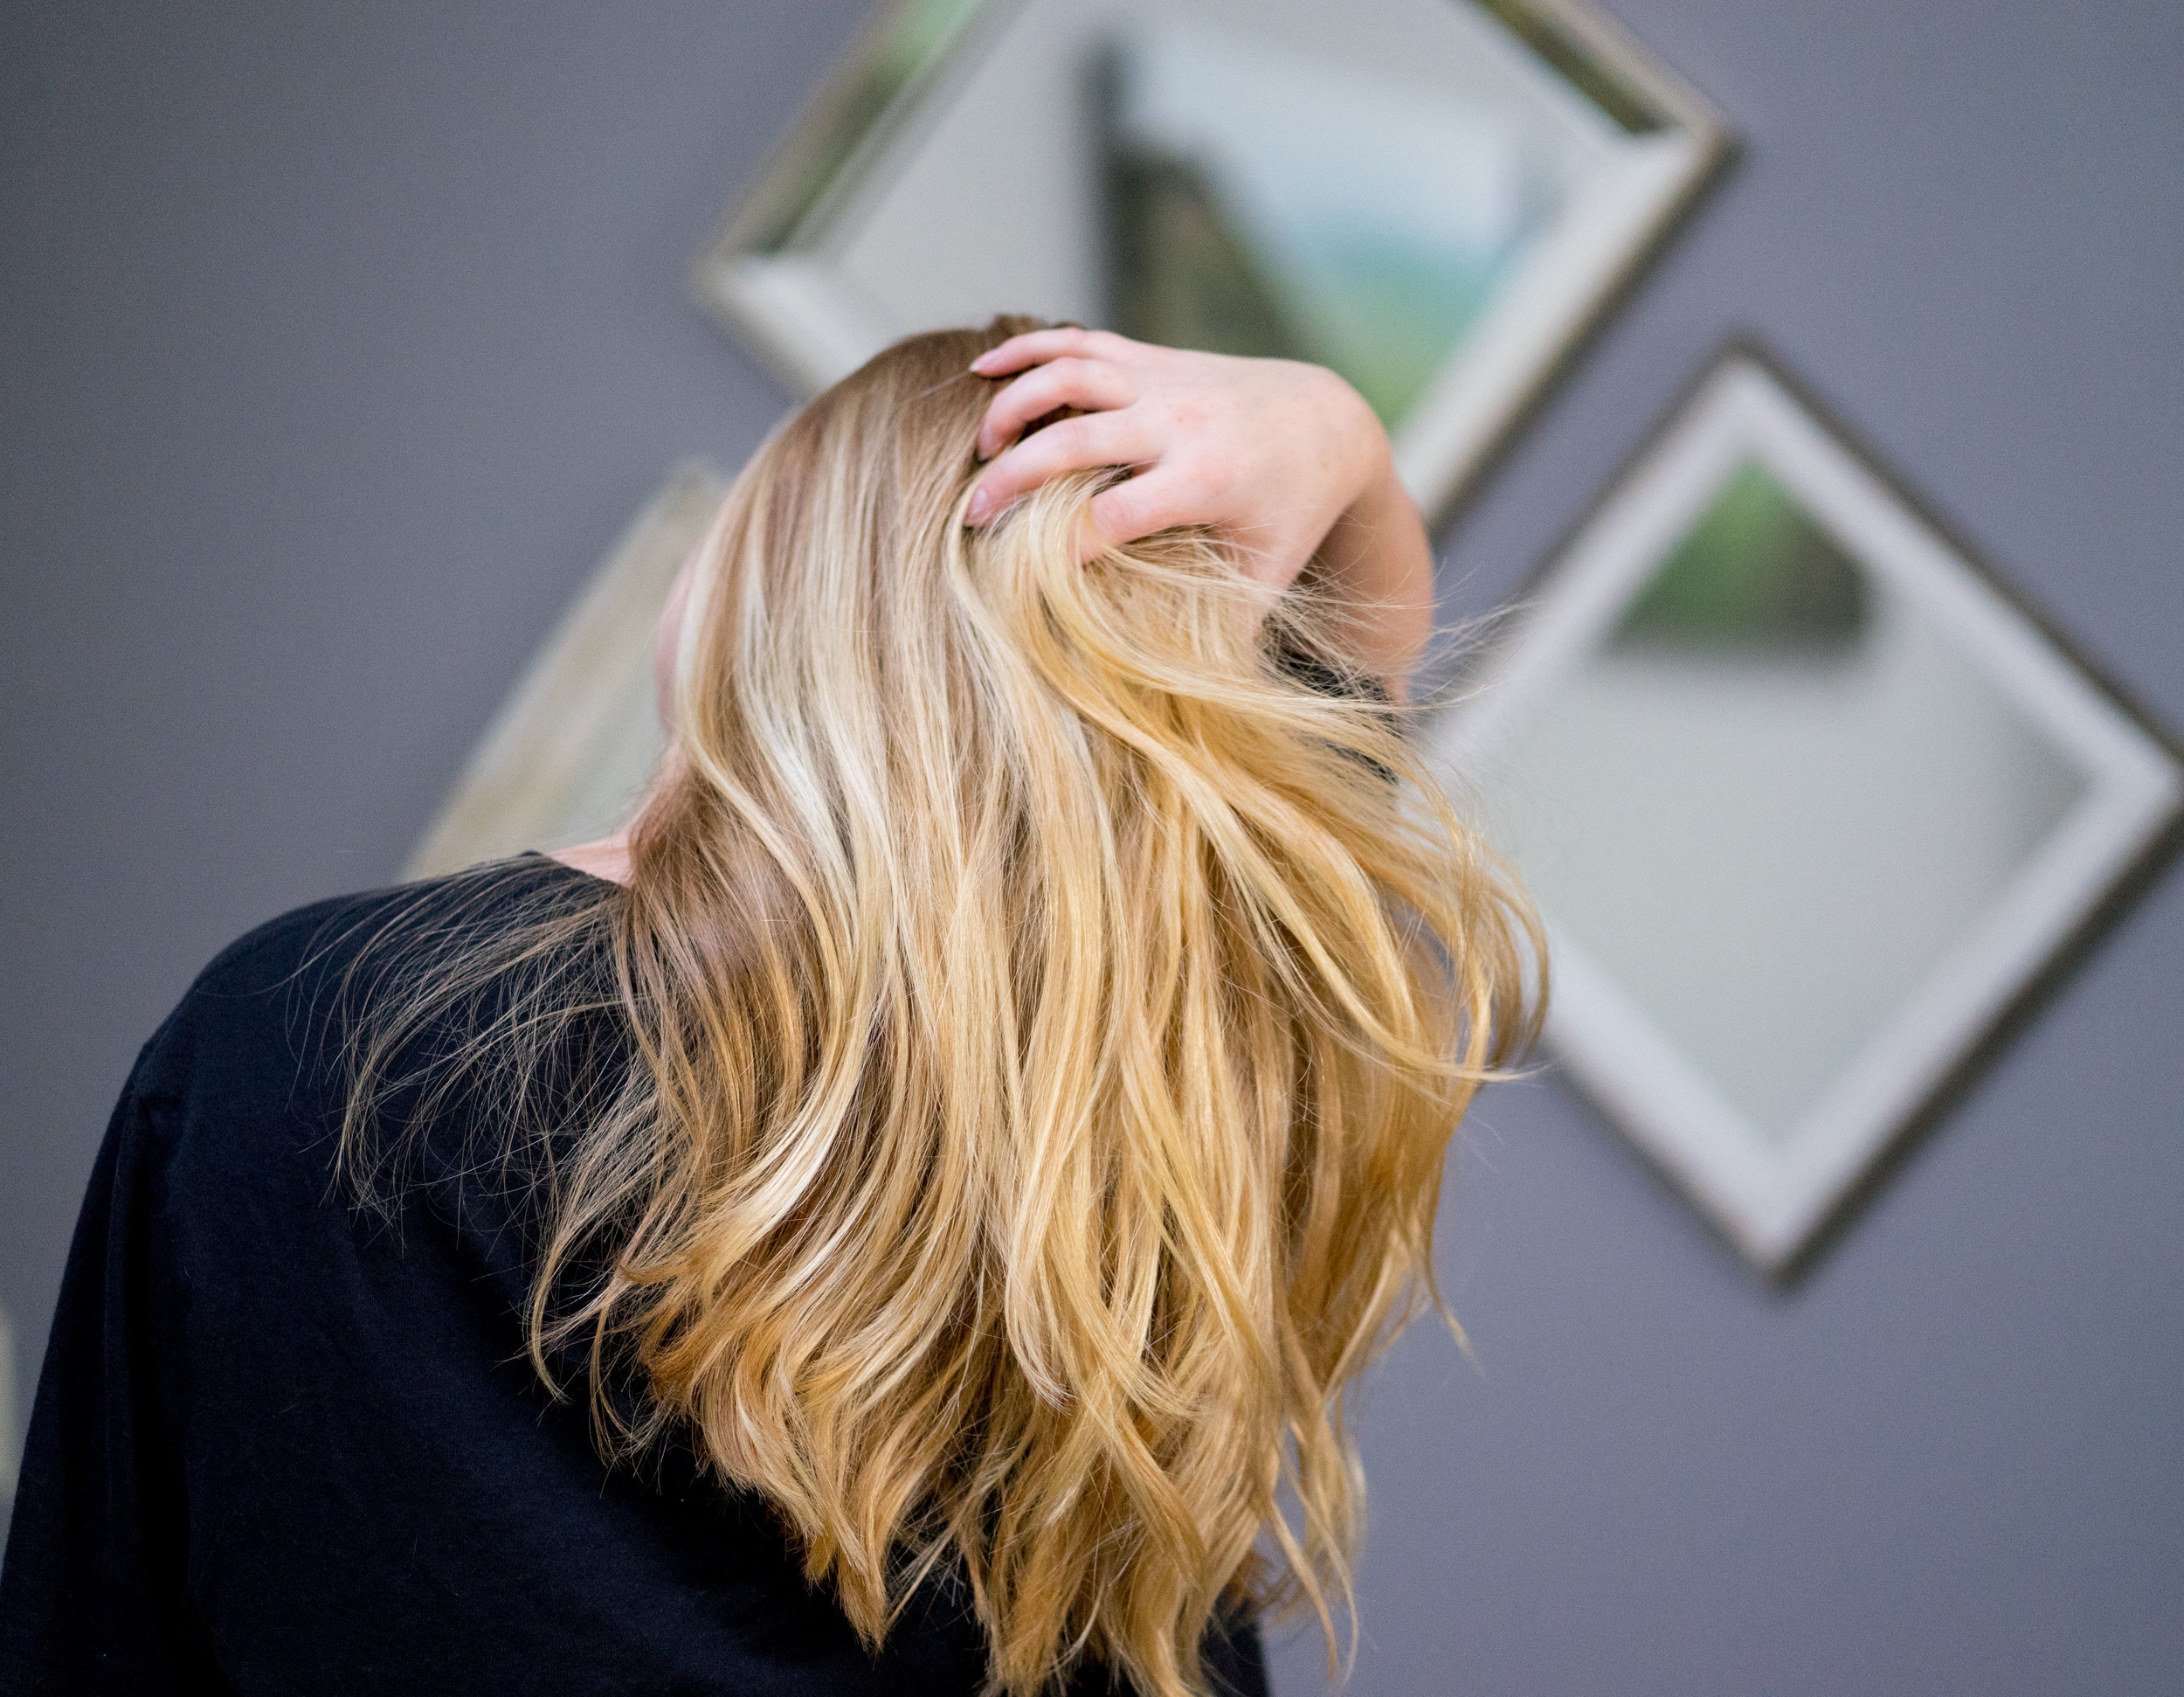 Maggie a la Mode - How to Achieve Healthy Hair